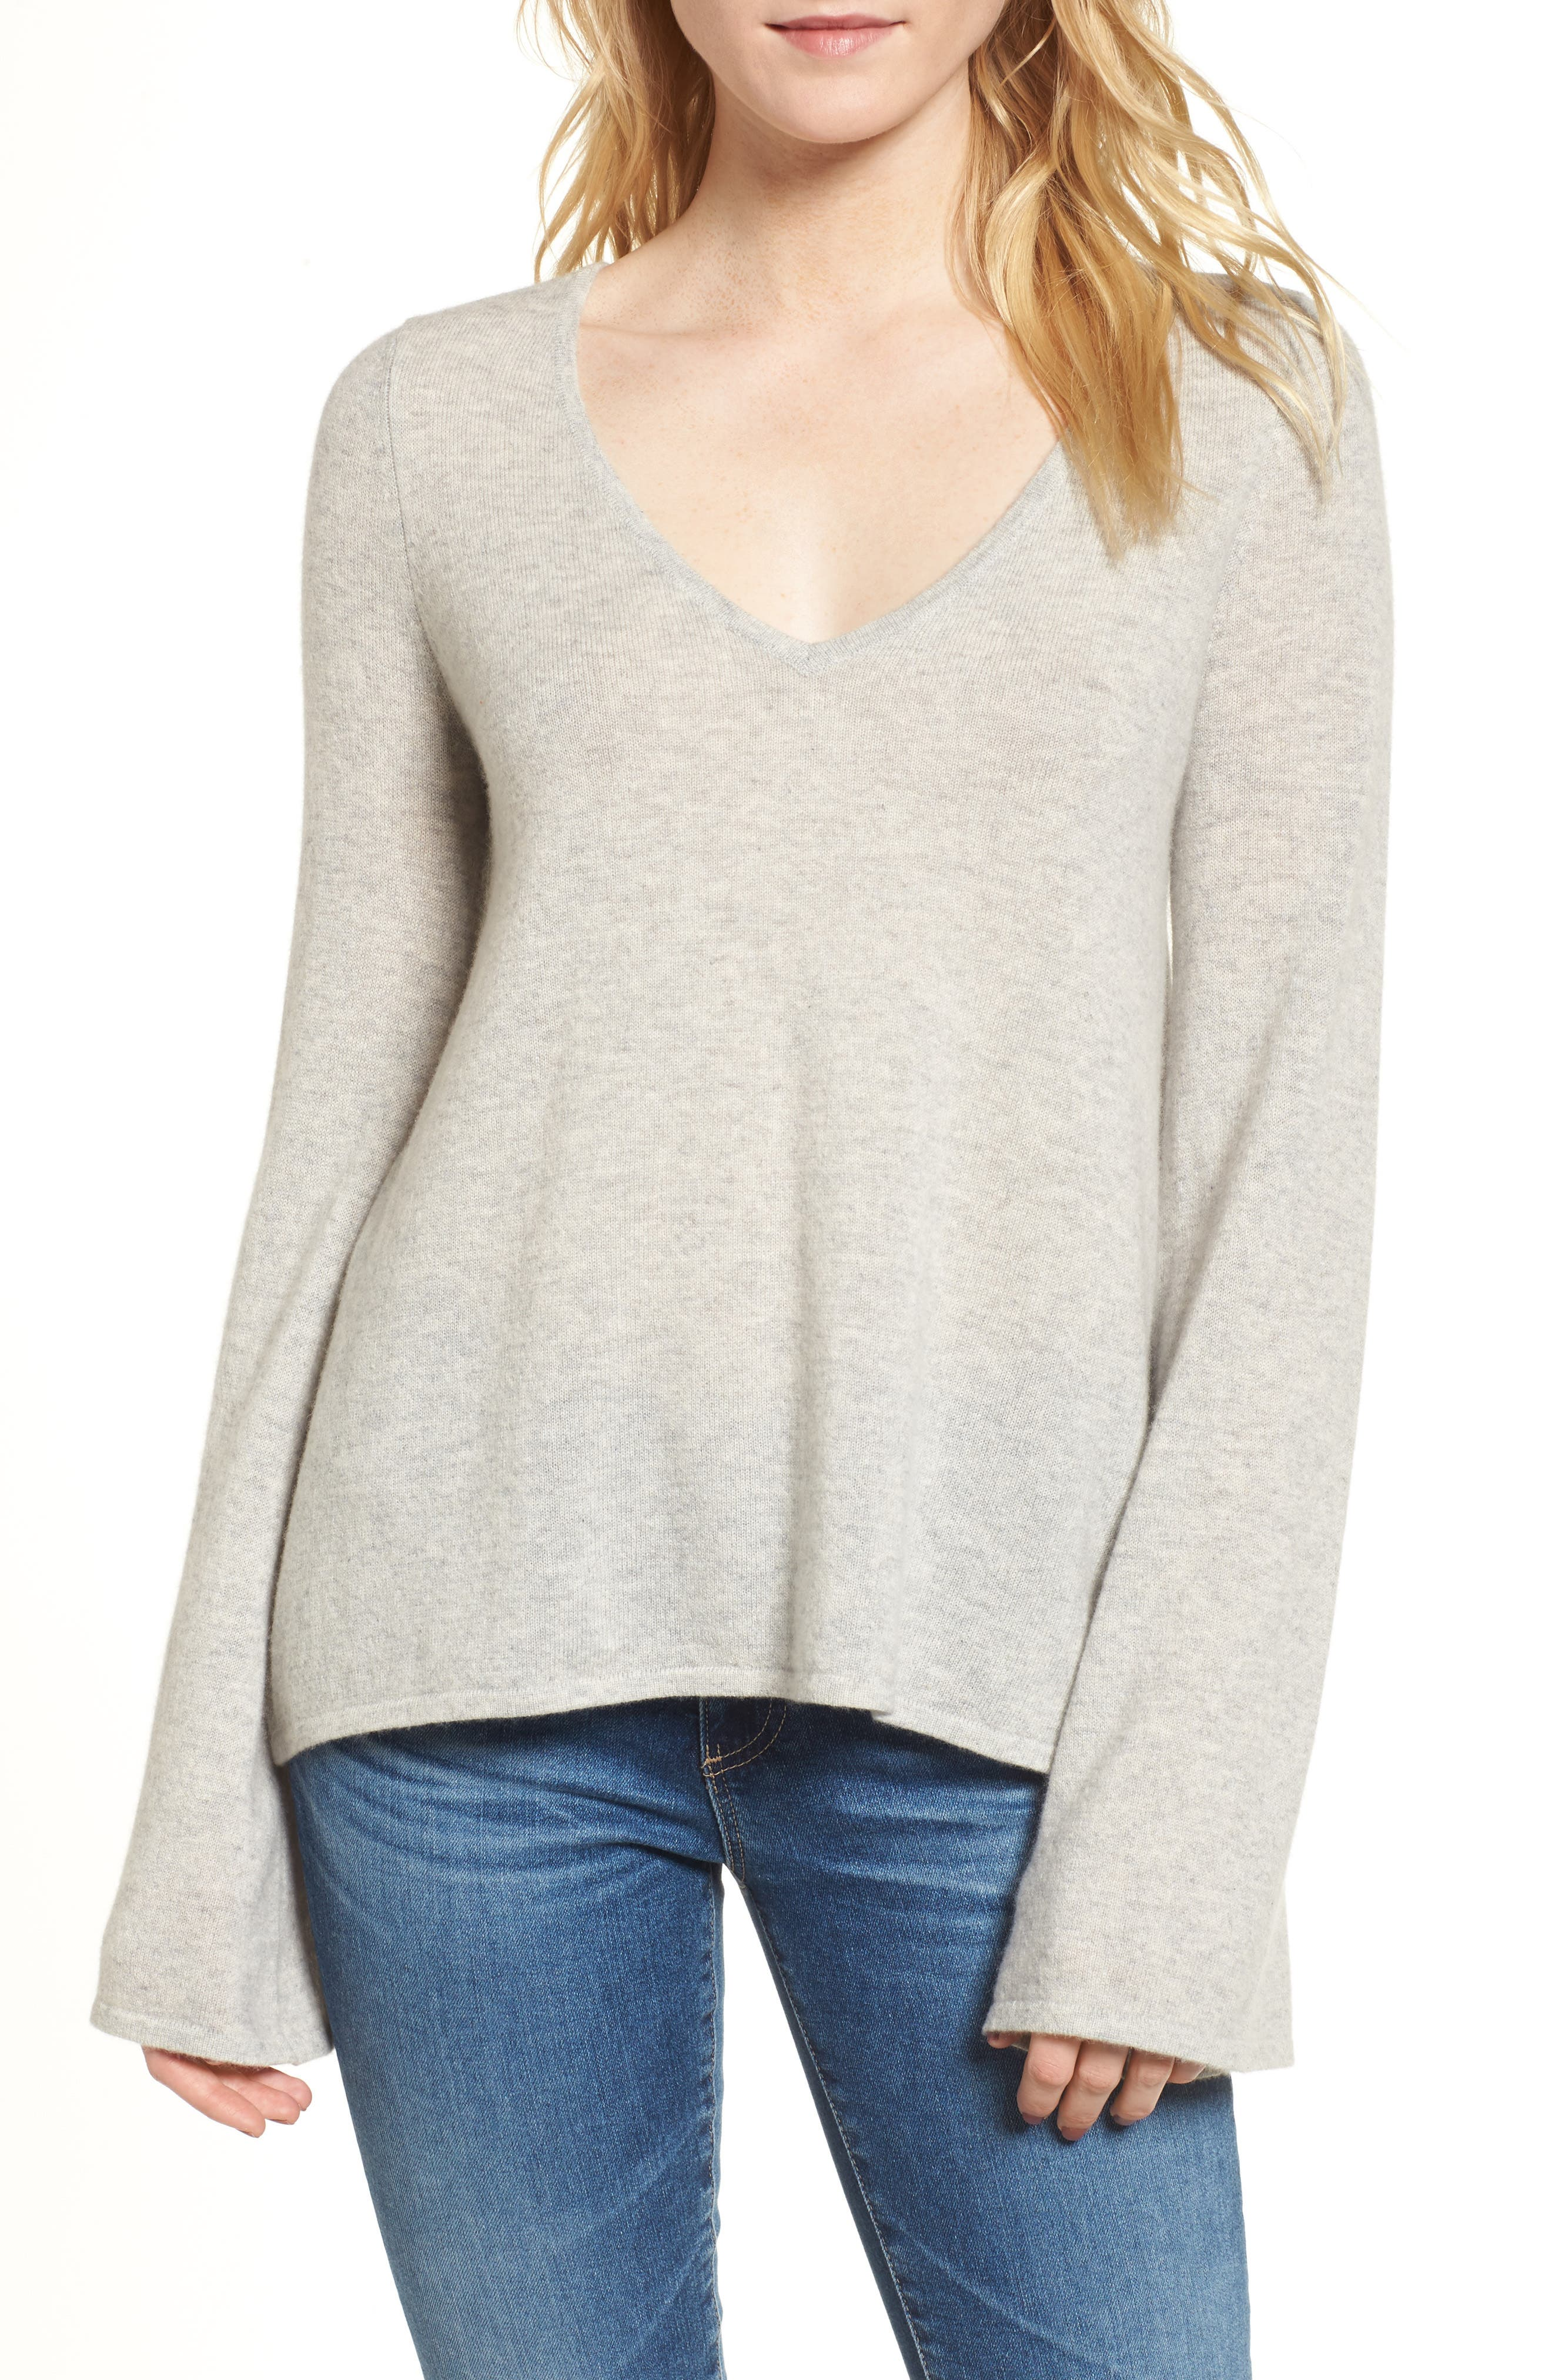 Marylee Cashmere Top,                             Main thumbnail 1, color,                             Light Heather Grey